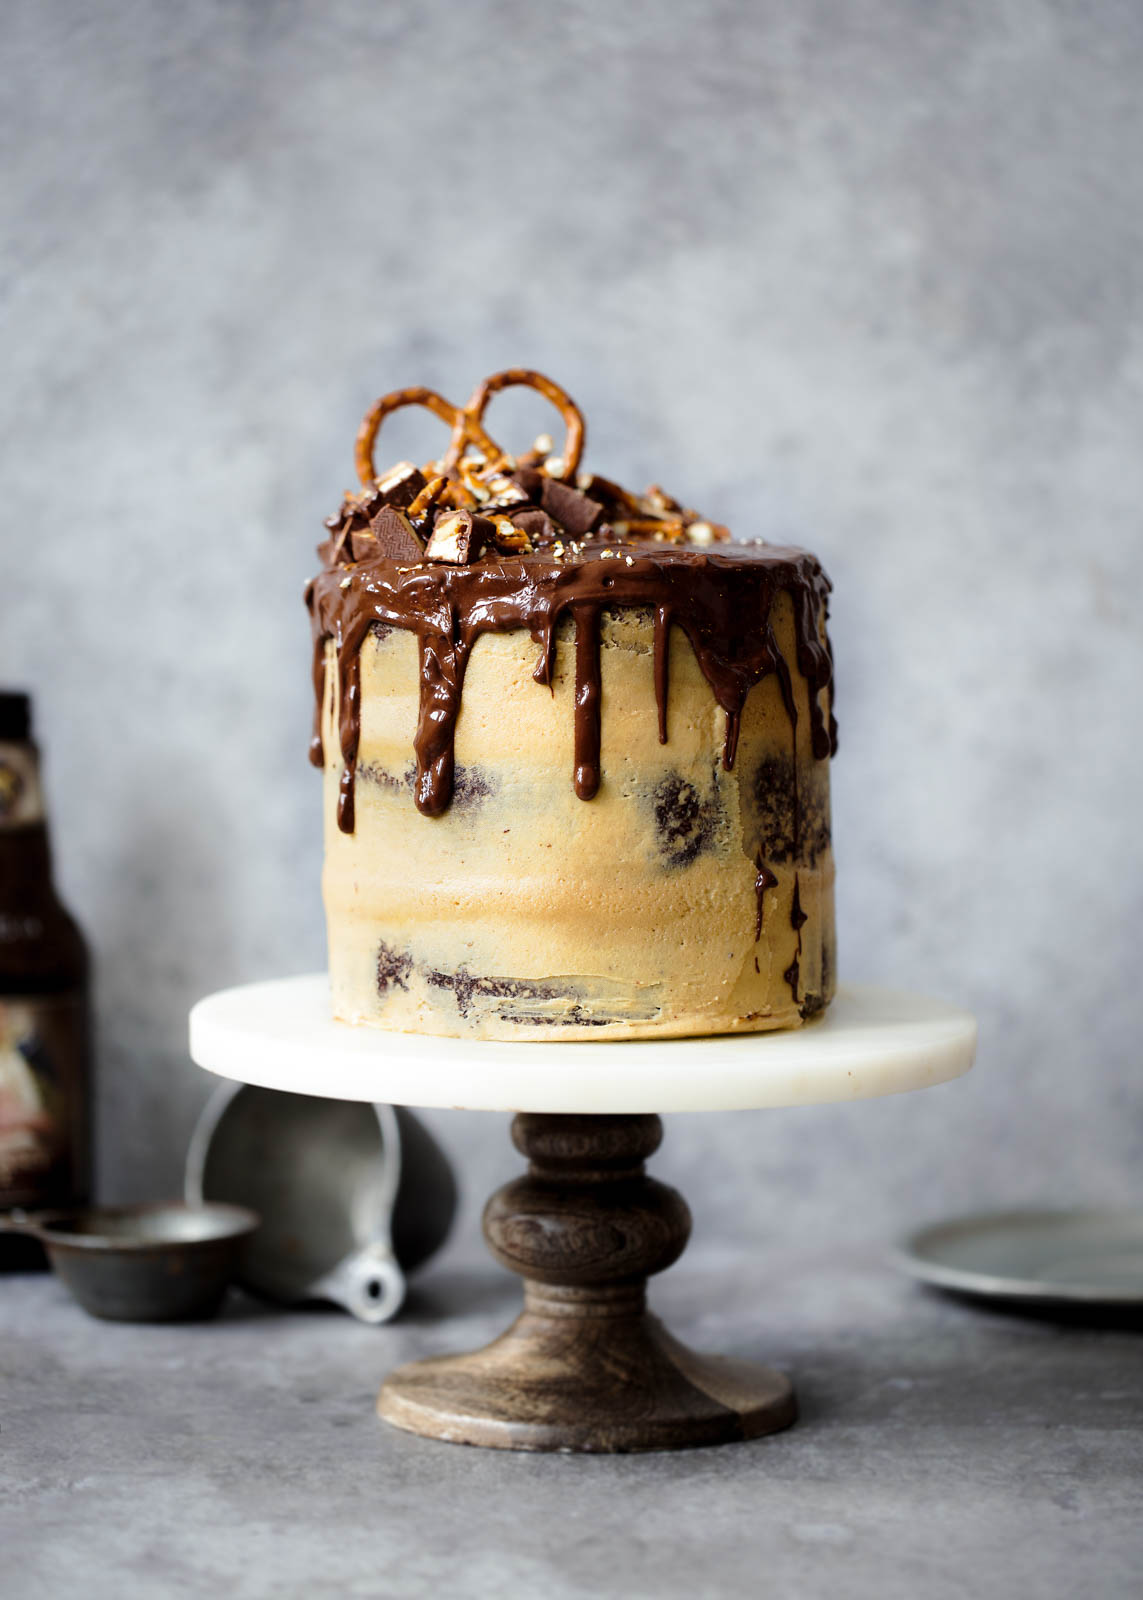 Peanut Butter Chocolate Stout Cake What Im Reading Lately Broma